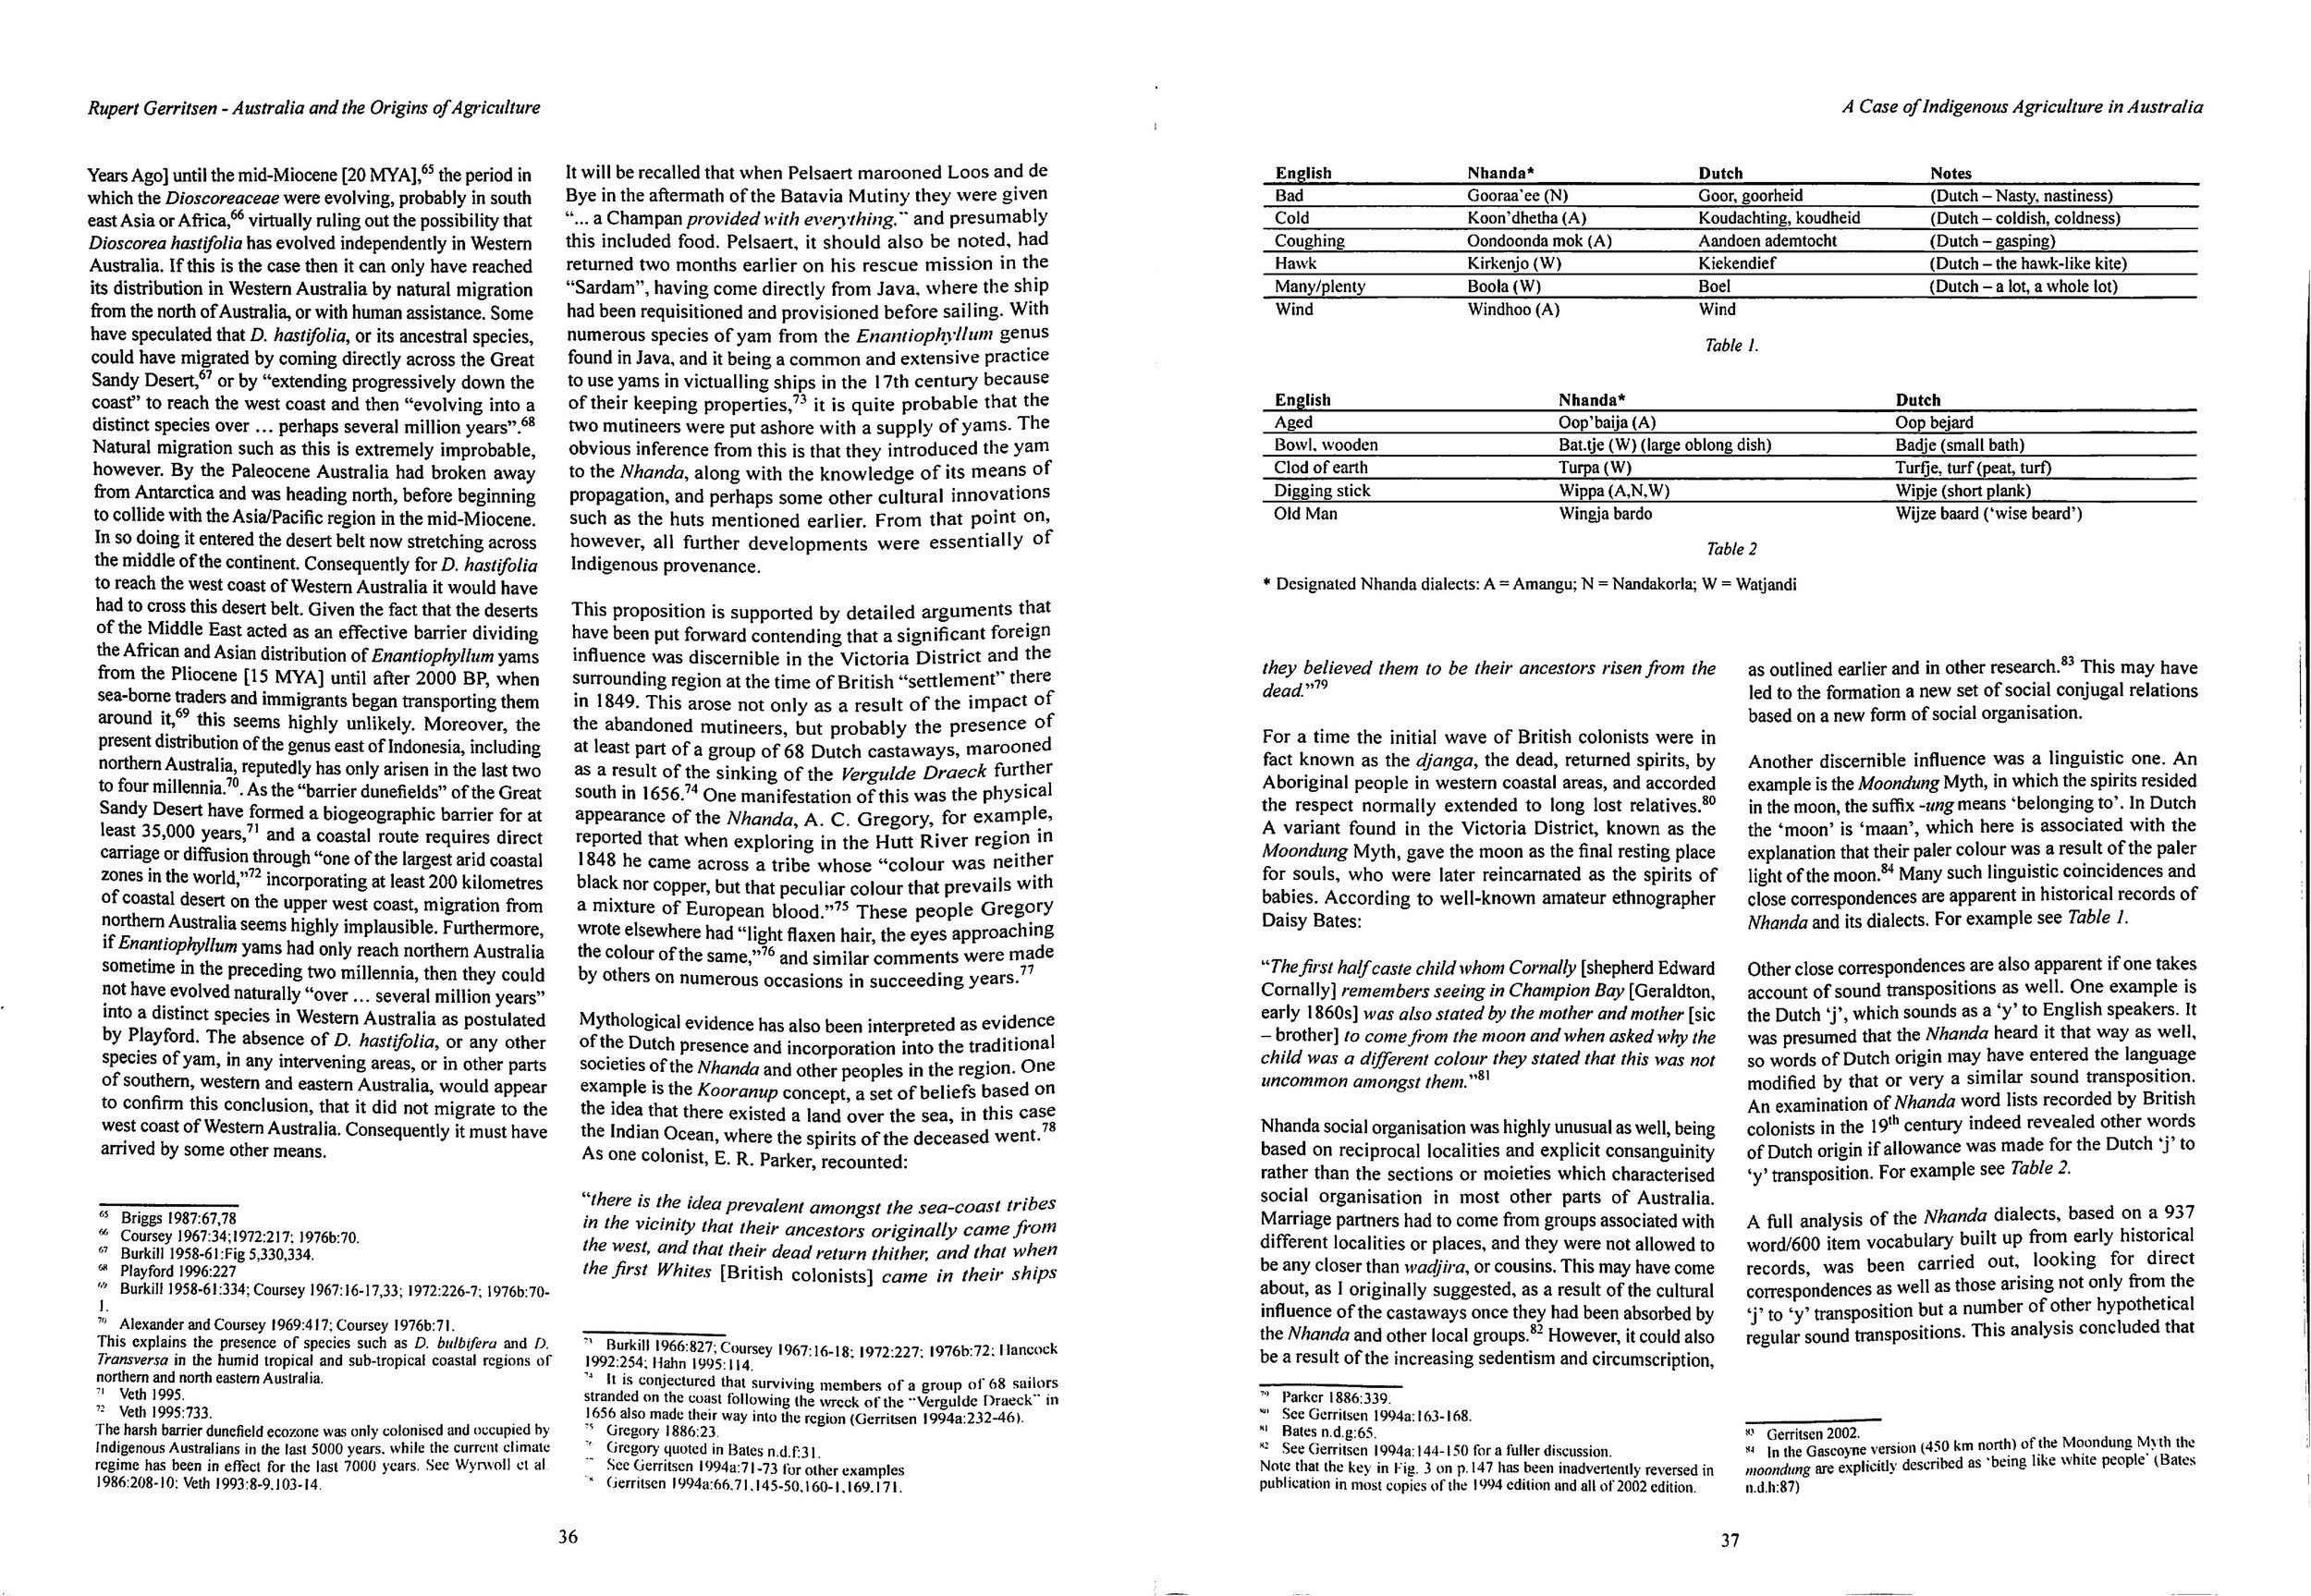 Figures 3 & 4 : Gerritsen's final paragraphs detail linguistic, mythological and other evidence to support his theory of a major influence of the Dutch in this region prior to British settlement.